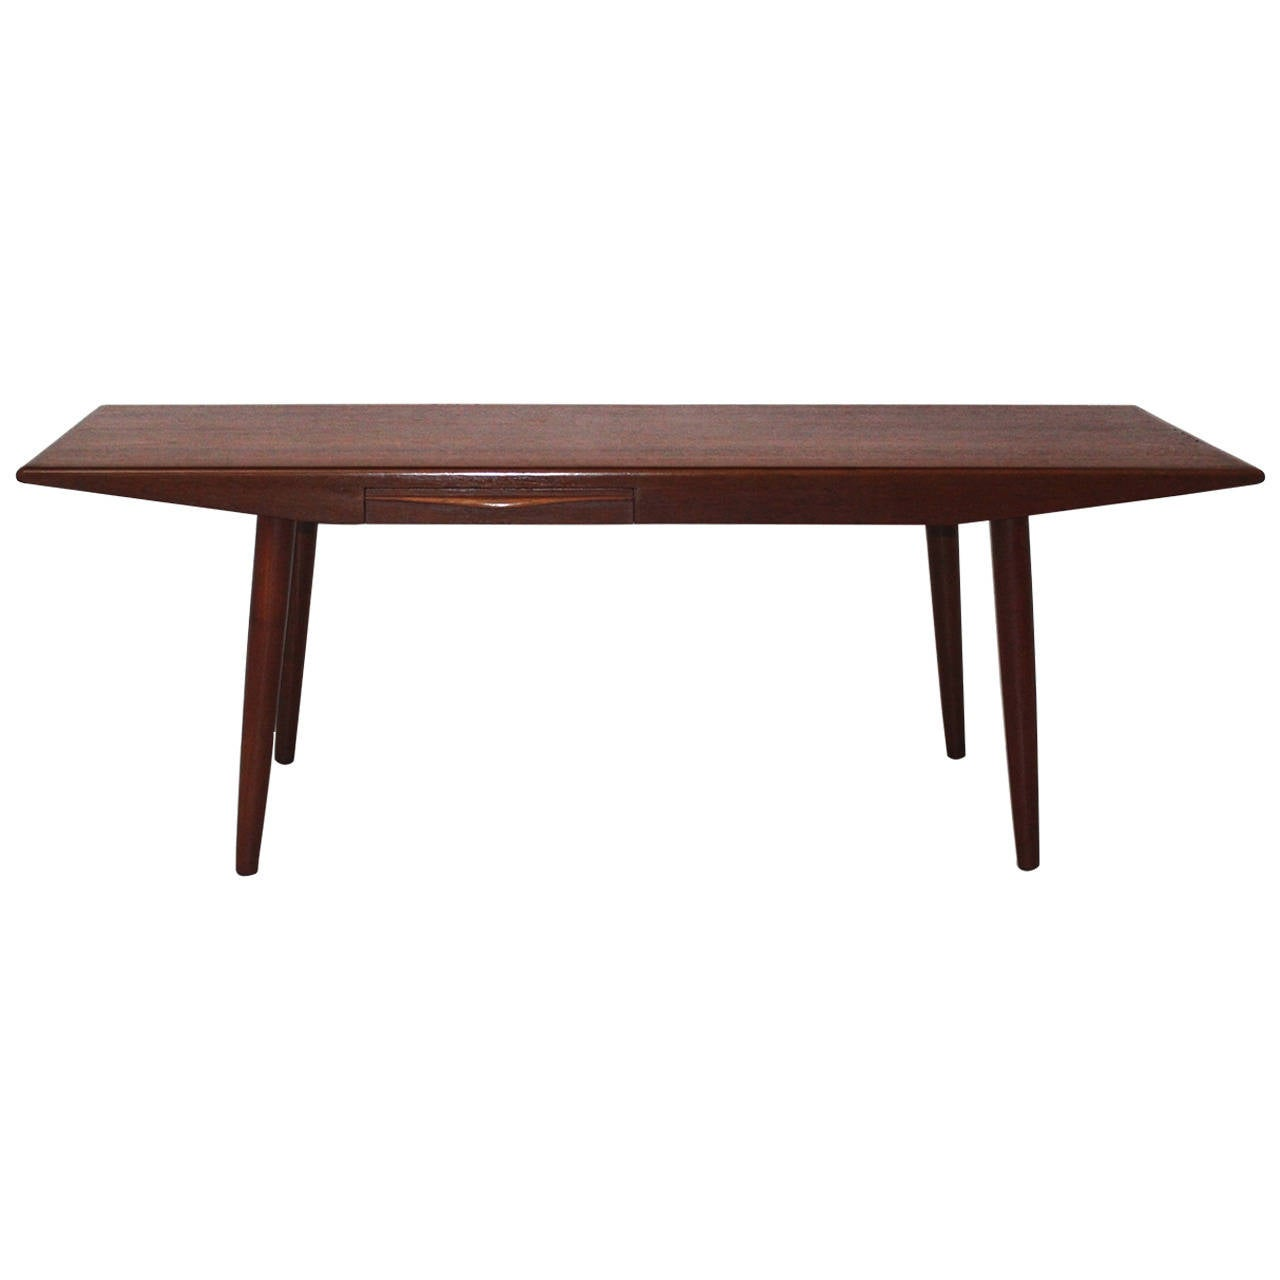 Danish modern teak coffee table by johannes andersen 1960s denmark for sale at 1stdibs Modern teak coffee table